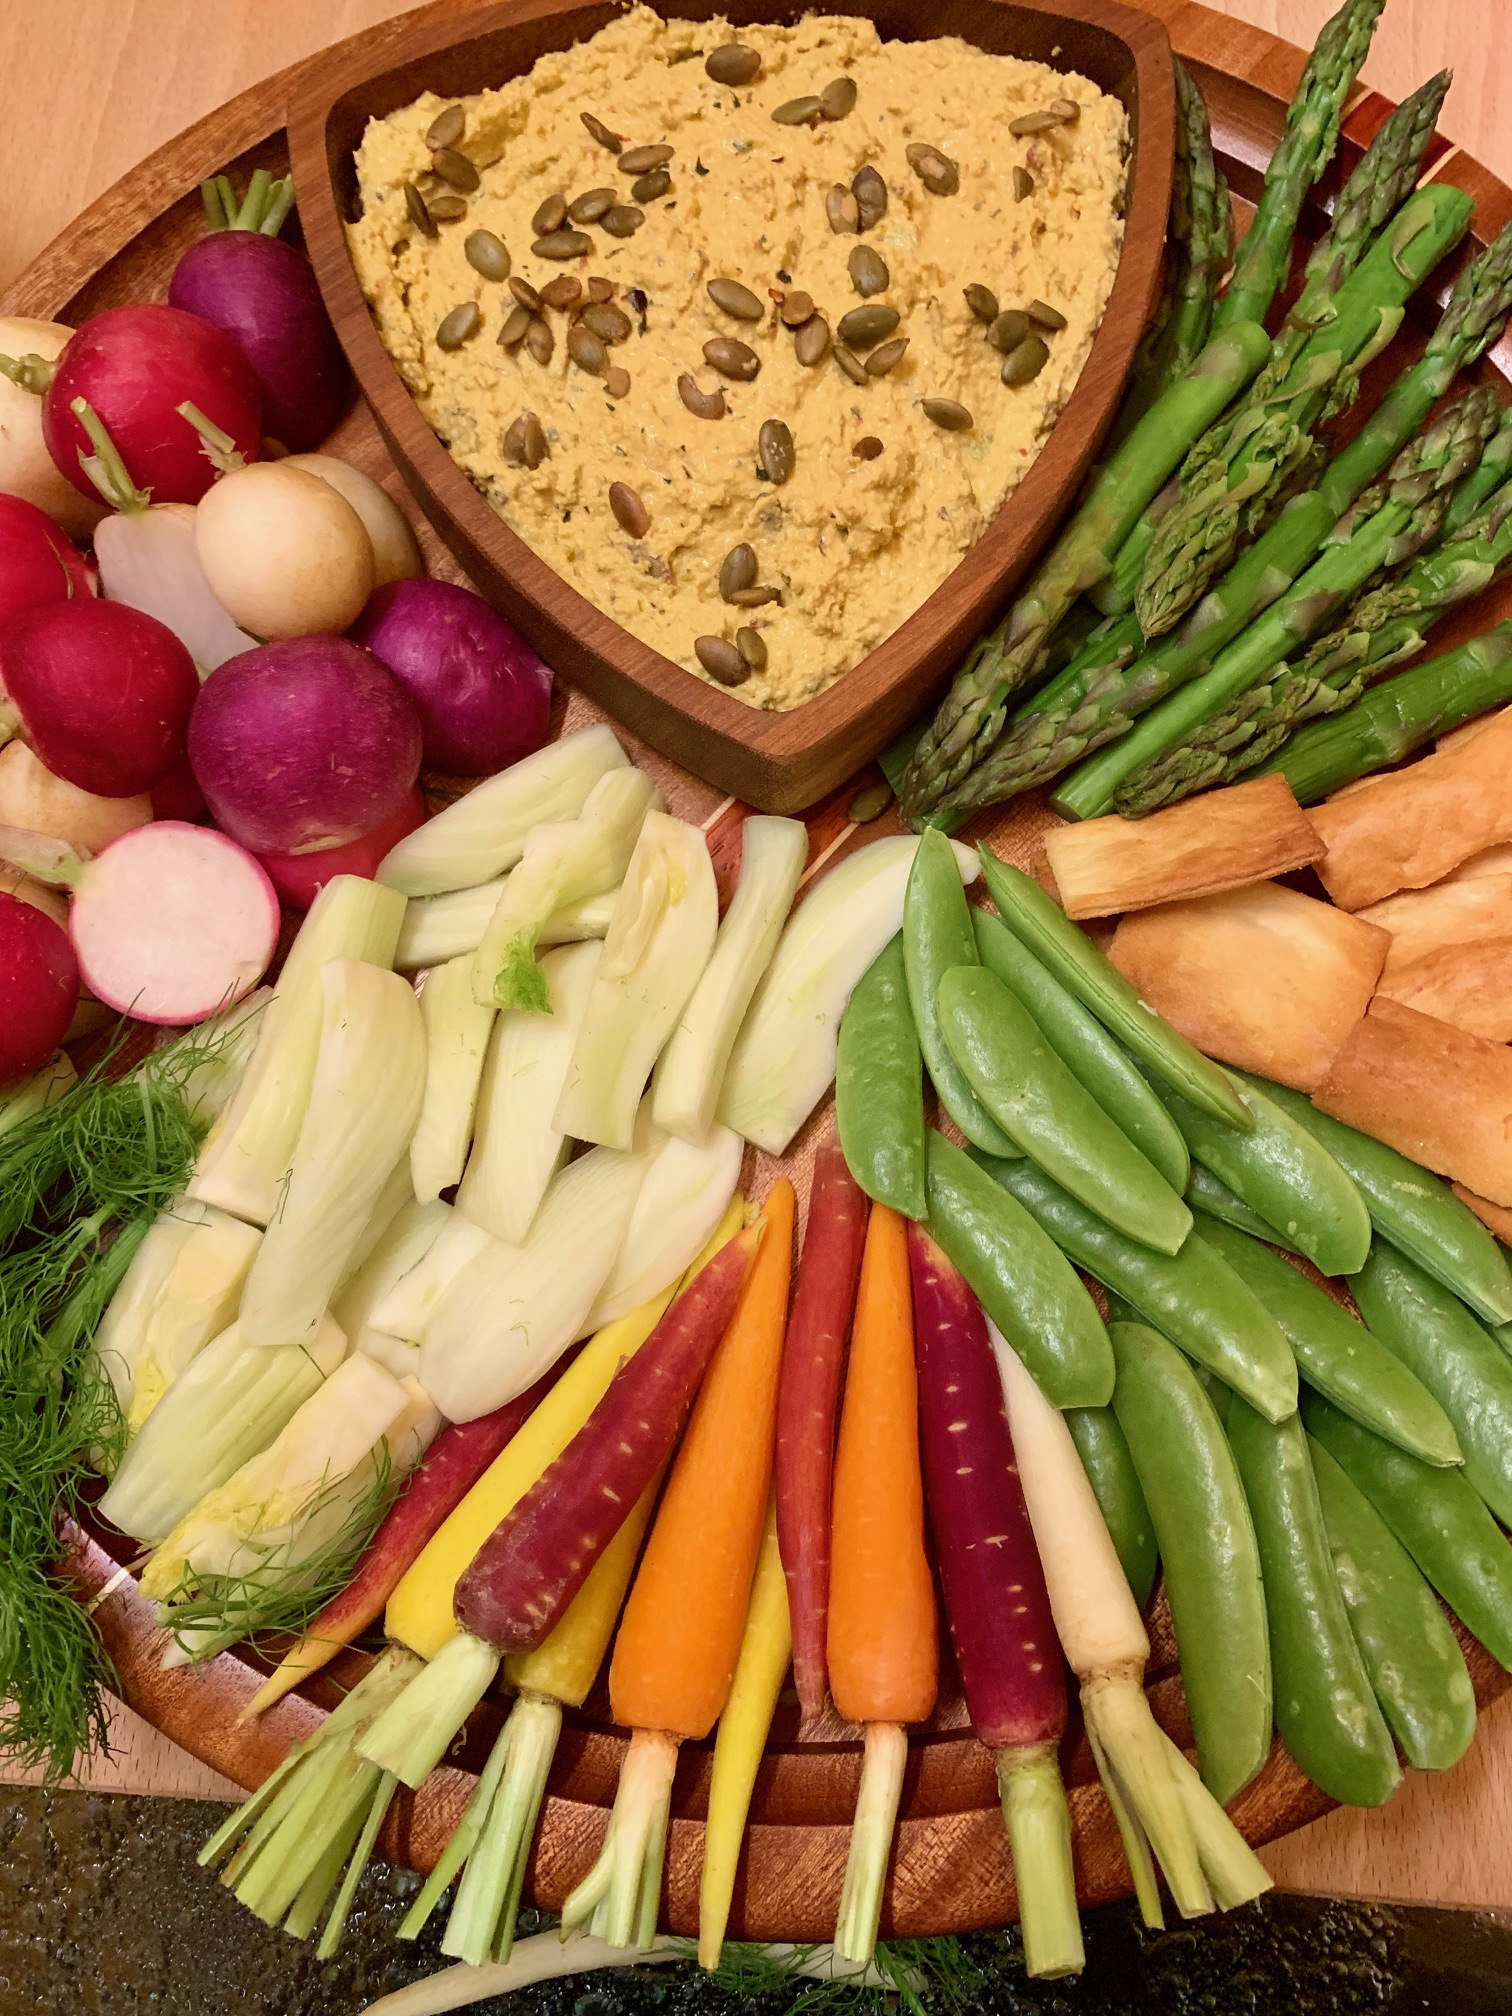 Serve with pita chips and assorted veggies. Pictured here rainbow radishes, fennel, rainbow carrots, sugar snap peas, pita chips and cooked asparagus.